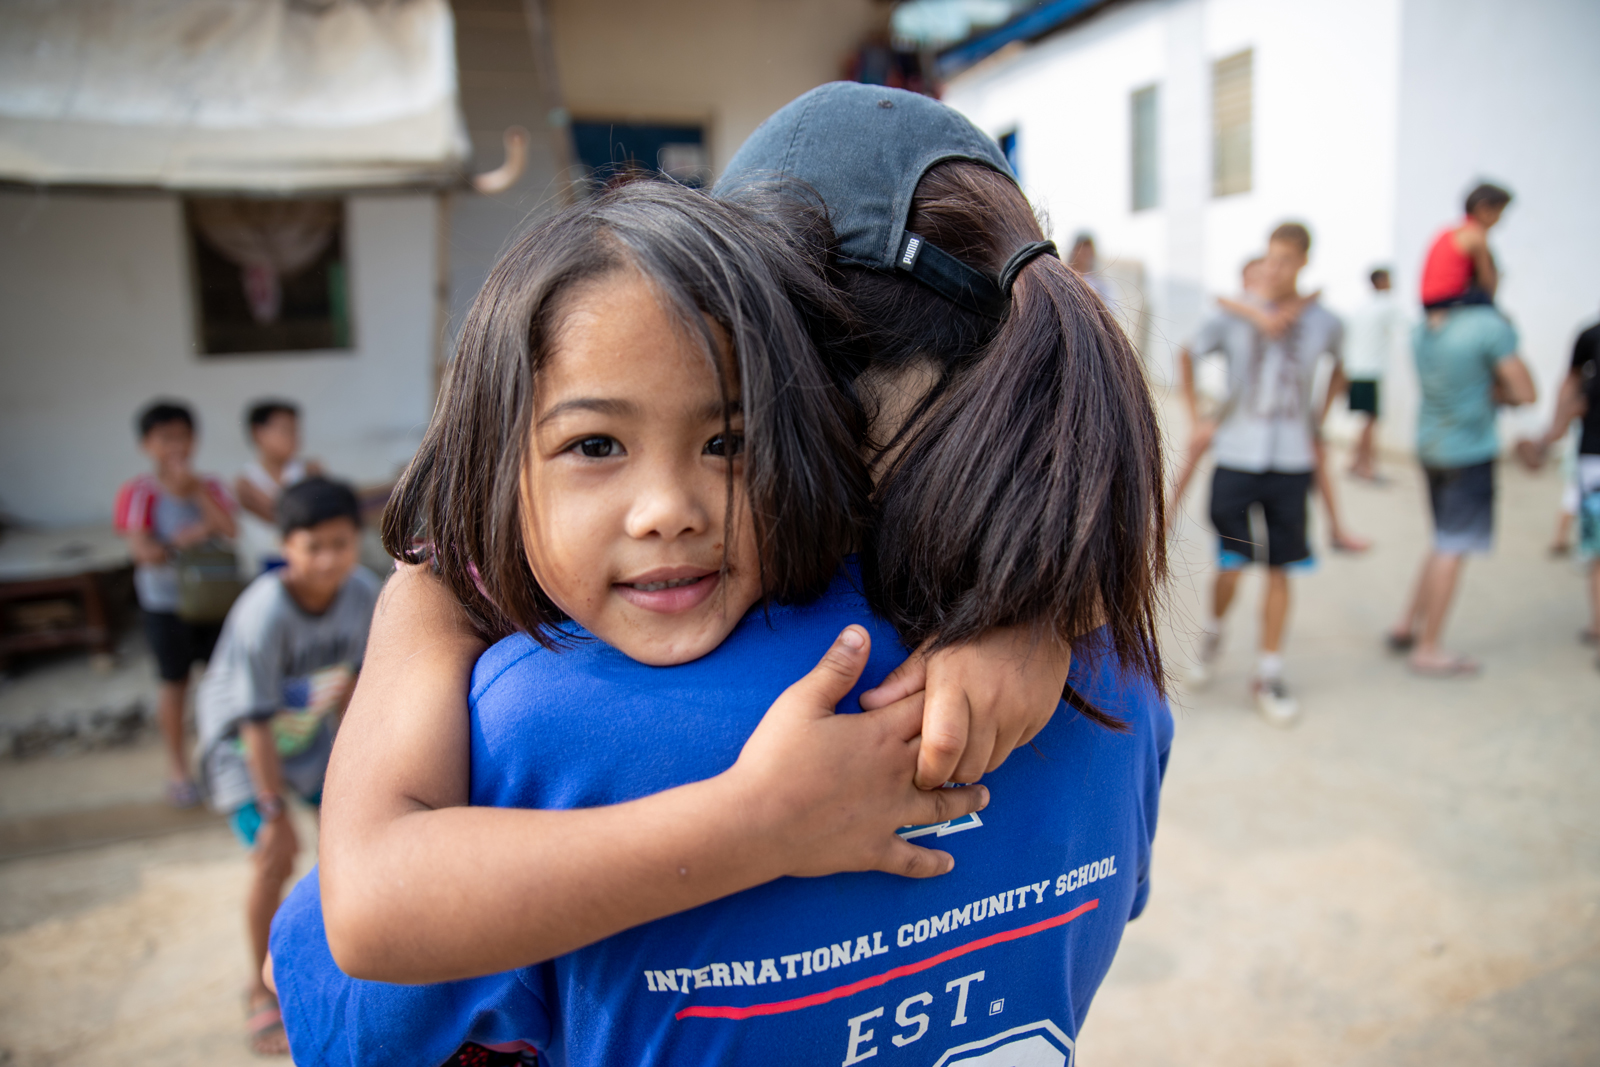 ICS Singapore high school student carrying child in Manila on service learning